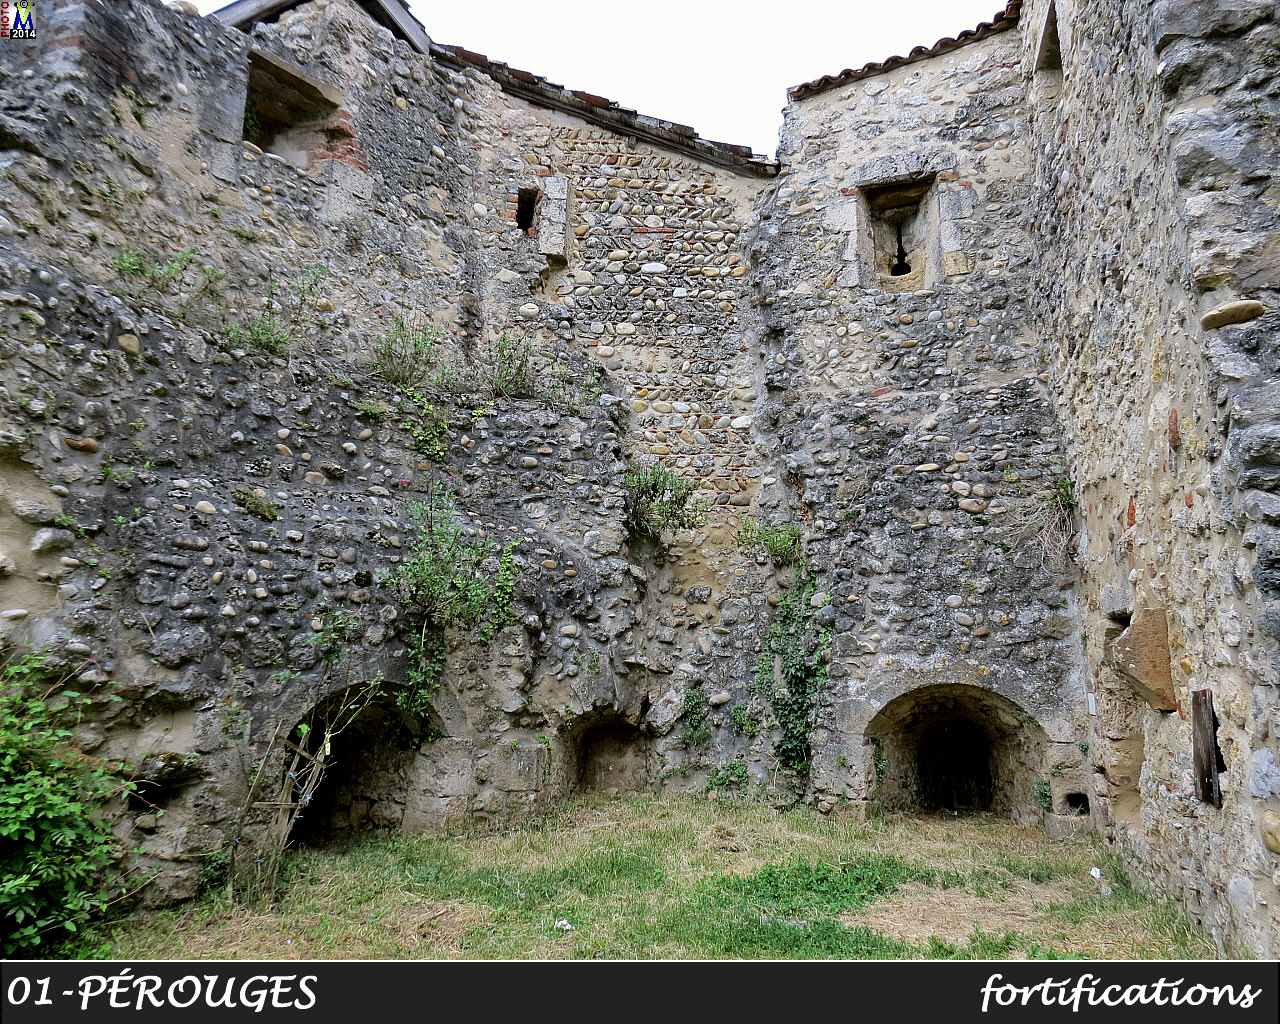 01PEROUGES_fortifications_100.jpg